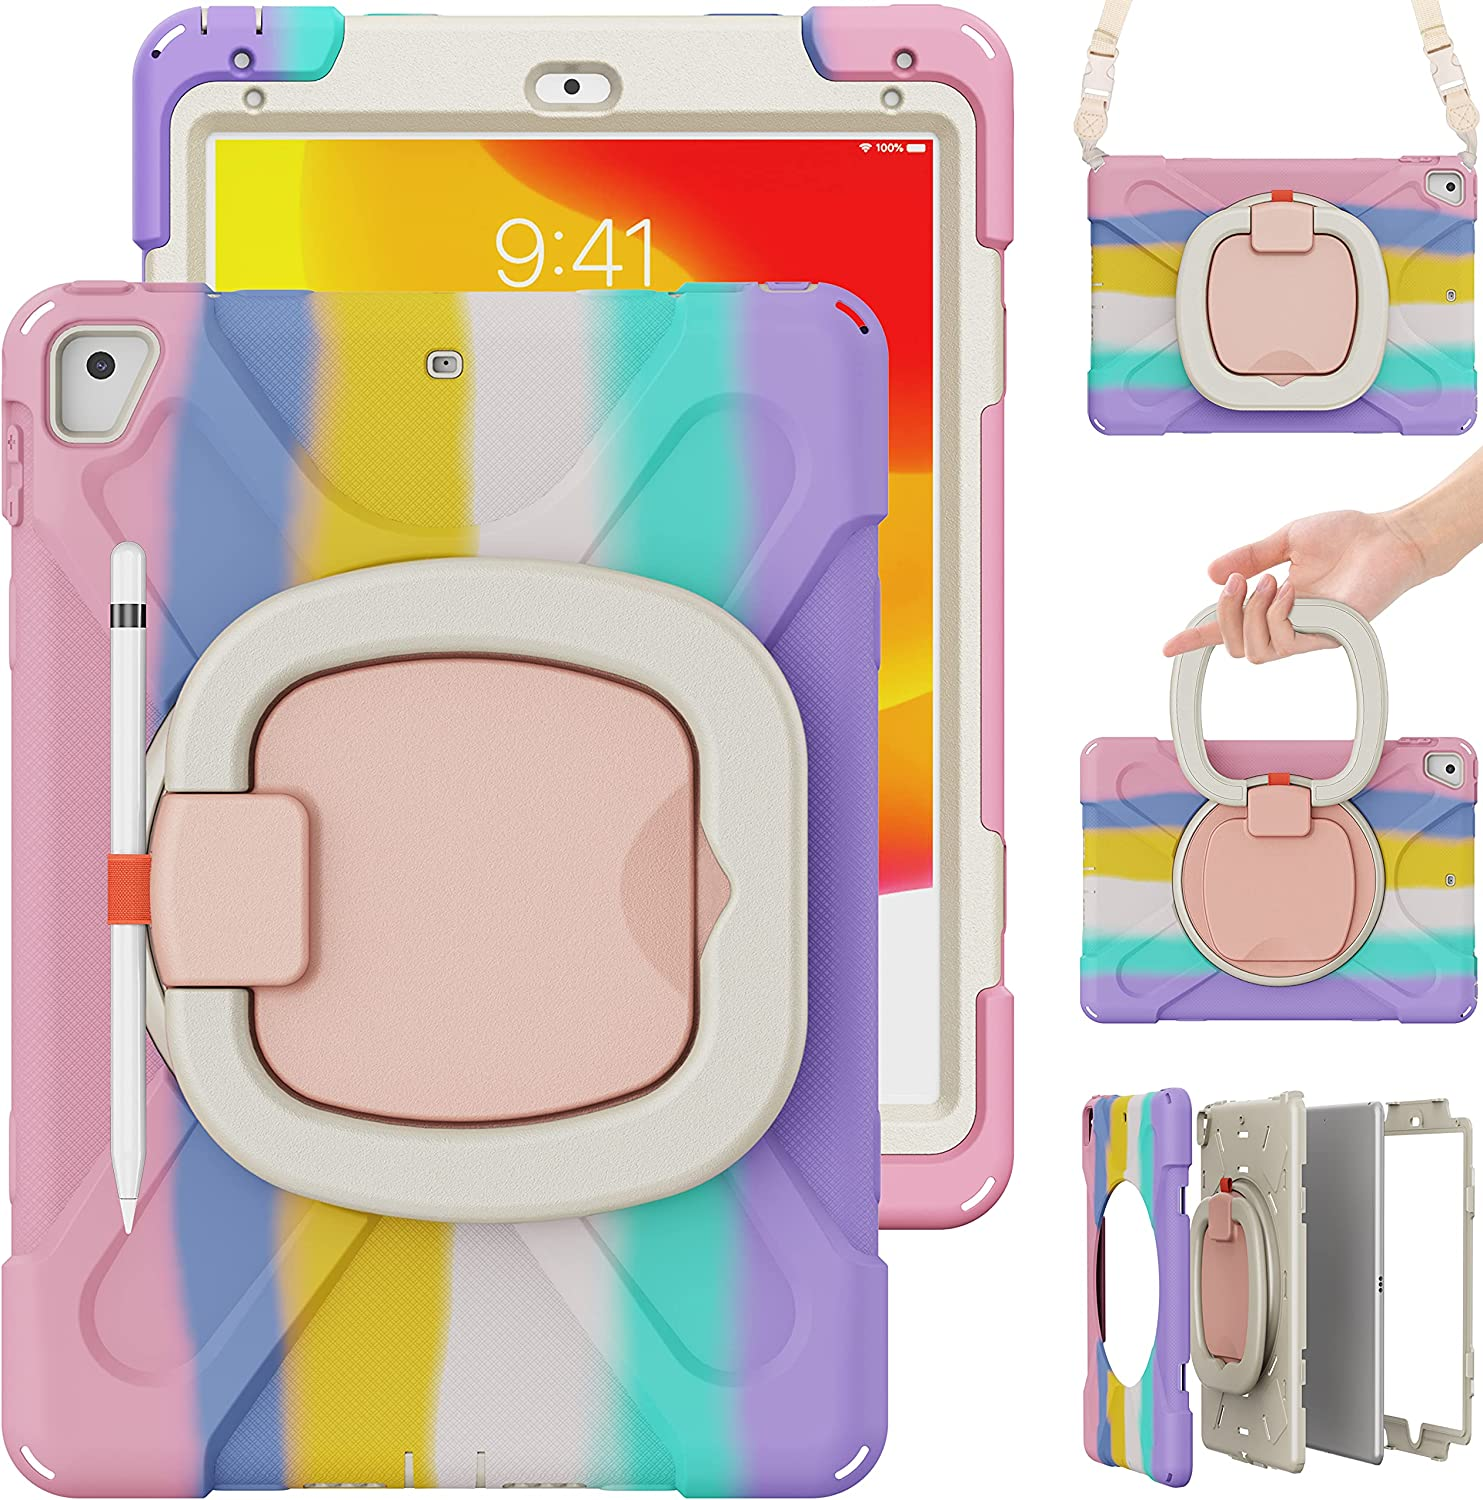 TSQ iPad Air 2 Case, iPad 5th/6th Generation Case, iPad Pro 9.7 Case for Kids Girls | Colorful Child Cute Case Cover w/ Stable Stand/Grip Shoulder Strap Pencil Holder for iPad 9.7 Inch | Rainbow Pink